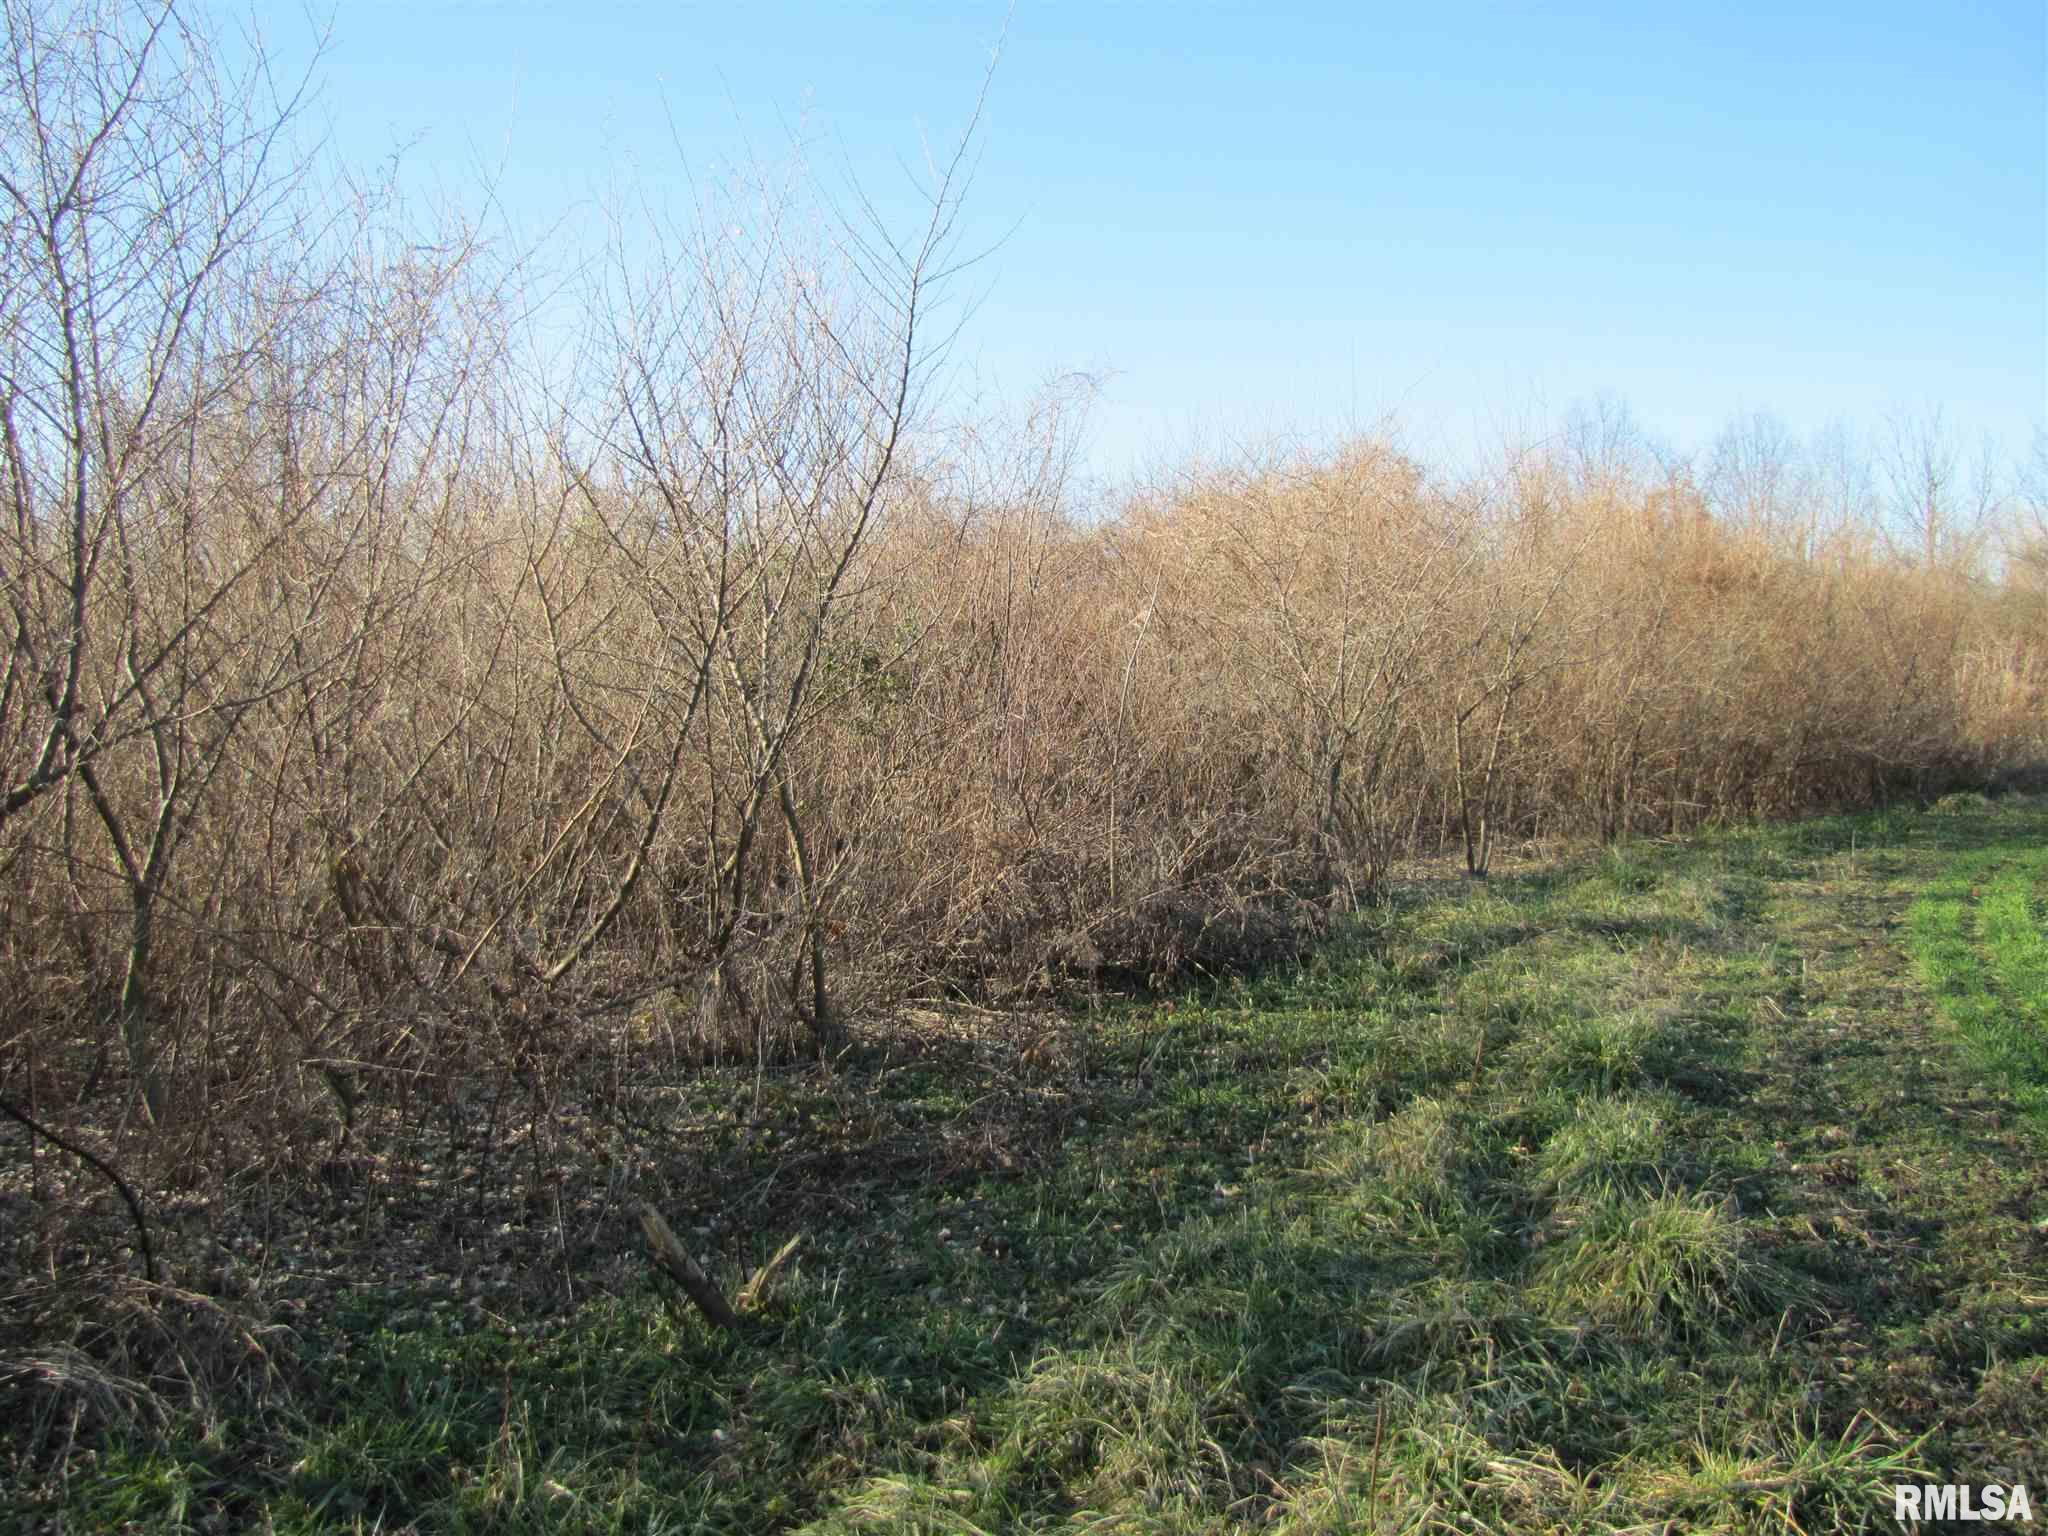 Looking for land in the country but not to far from town?  Over 60 acres with 49 acres of cropland.  Forestry CRP income of $2736 a year until 9/30/28.  Great place to hunt, farm or build a new home!